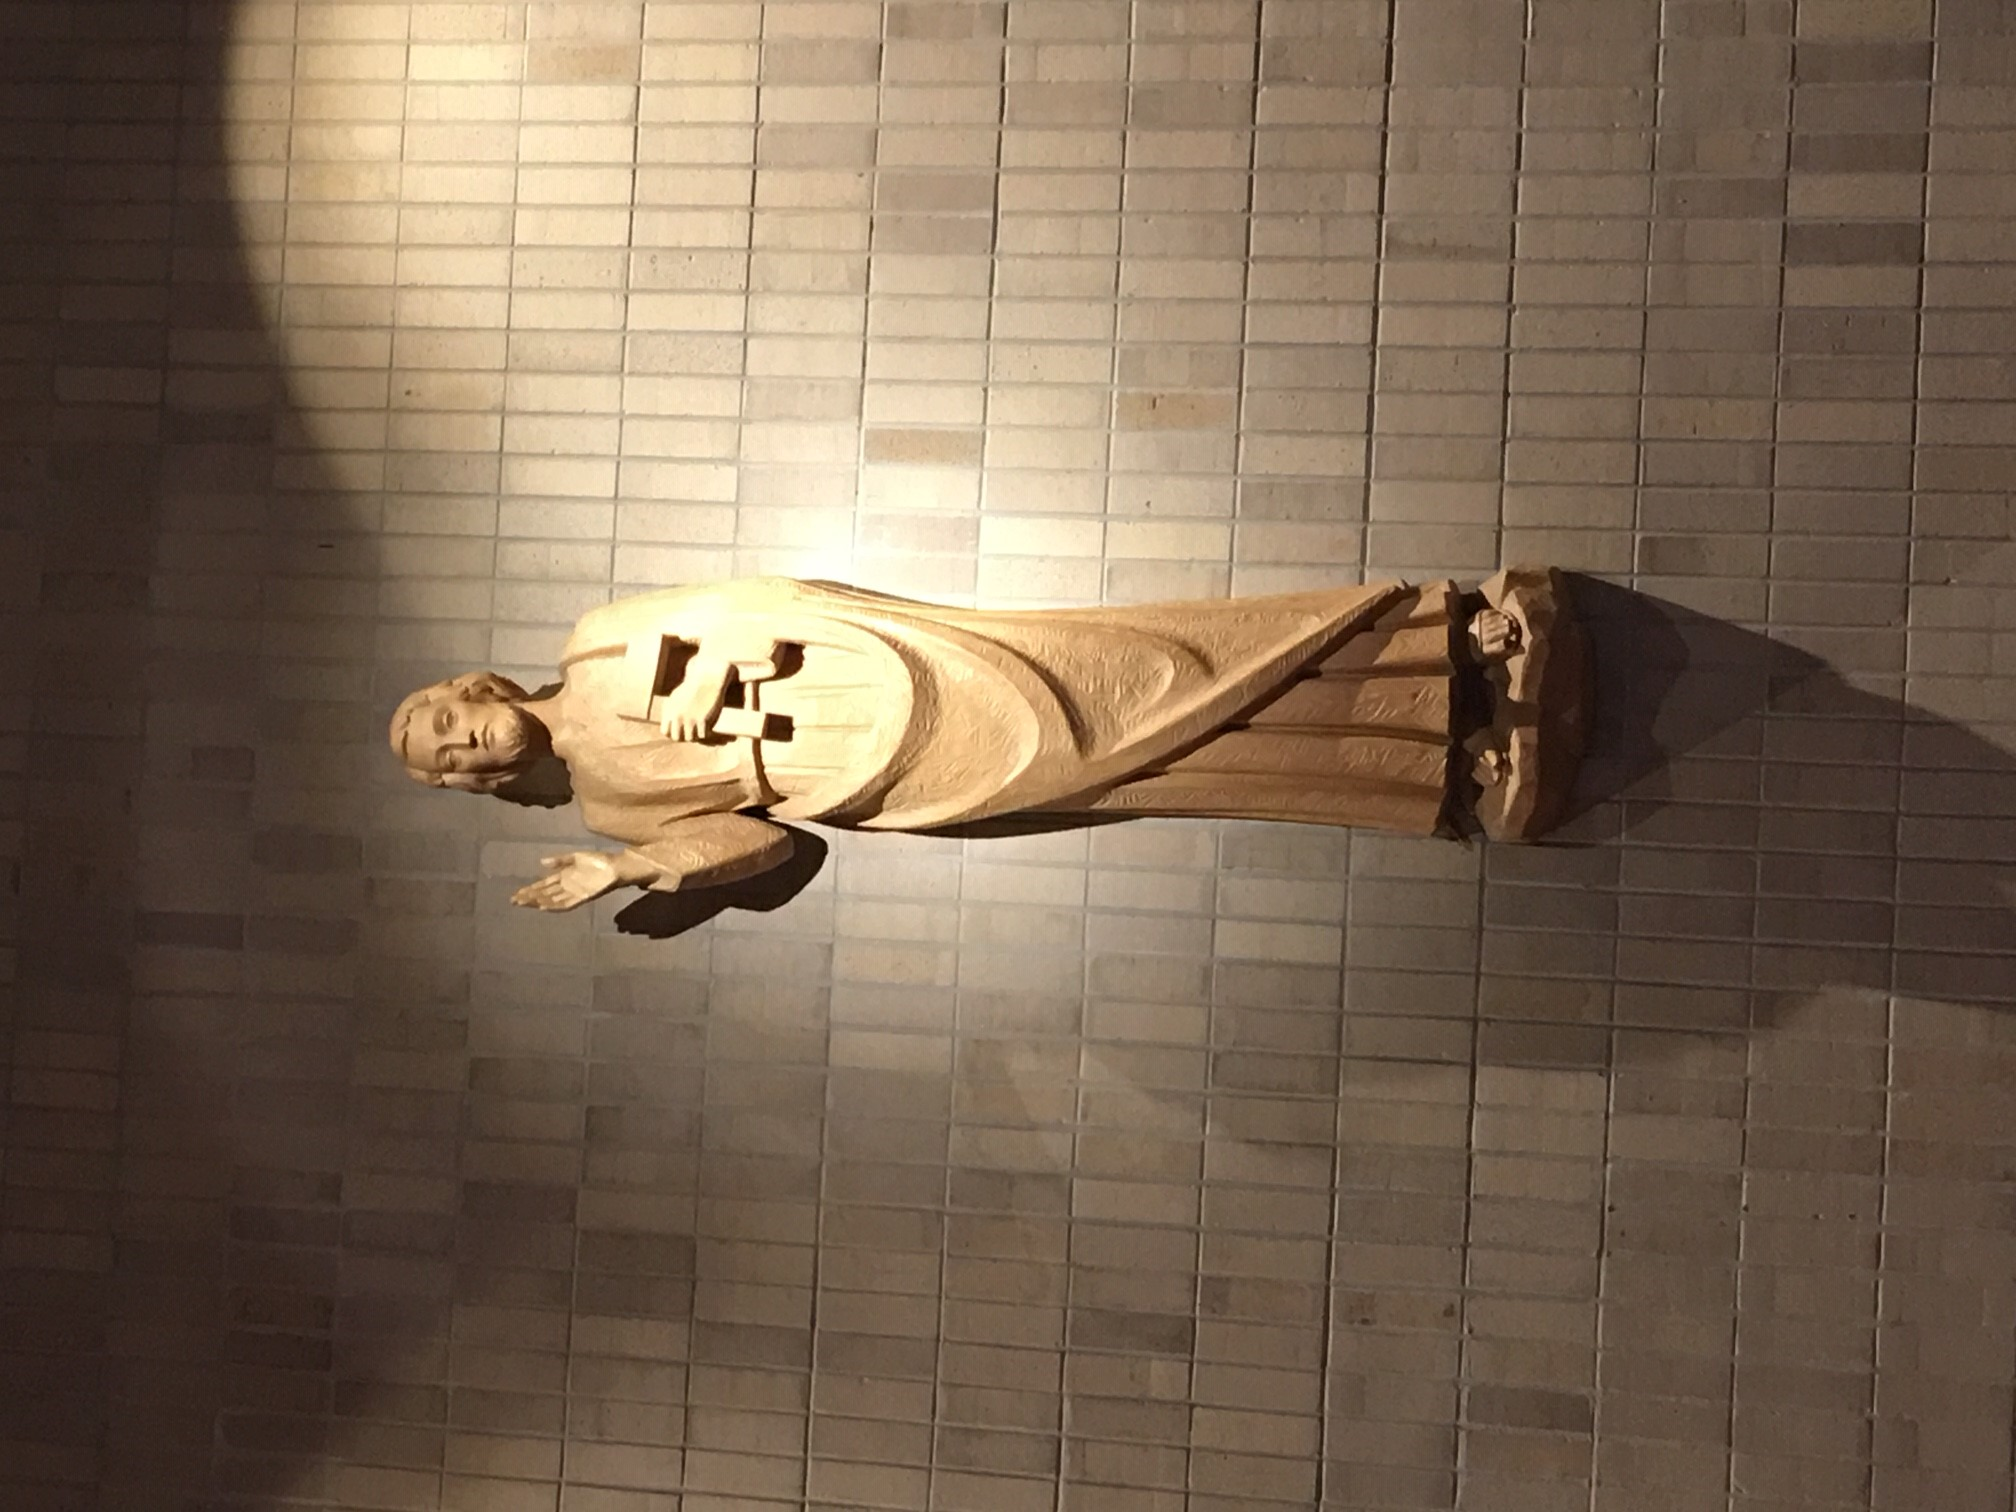 St_Joe_Statue_CHURCH.jpg